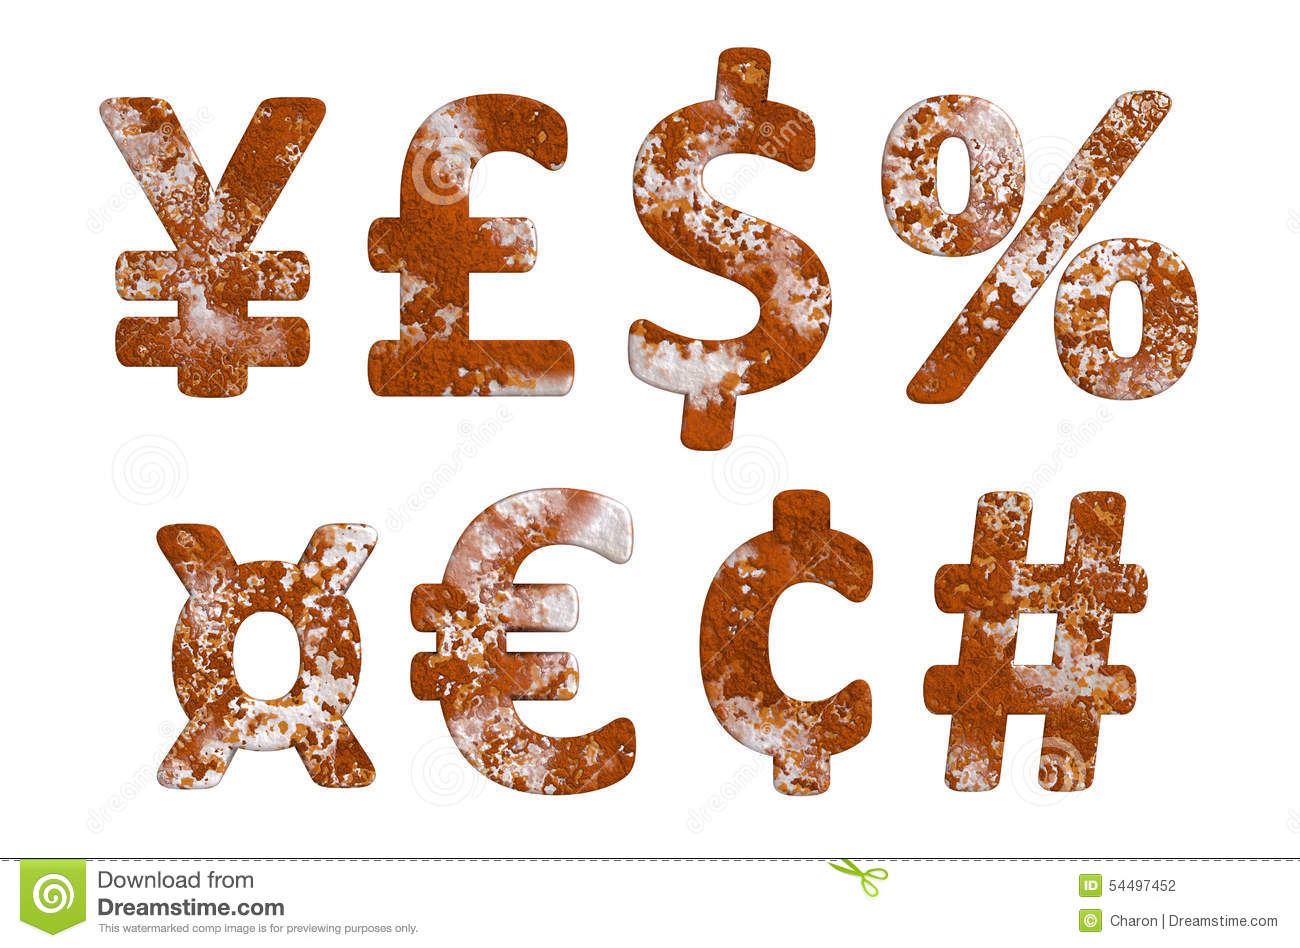 Rust currency money numeral sign stock photo illustration of rust currency money numeral sign buycottarizona Choice Image